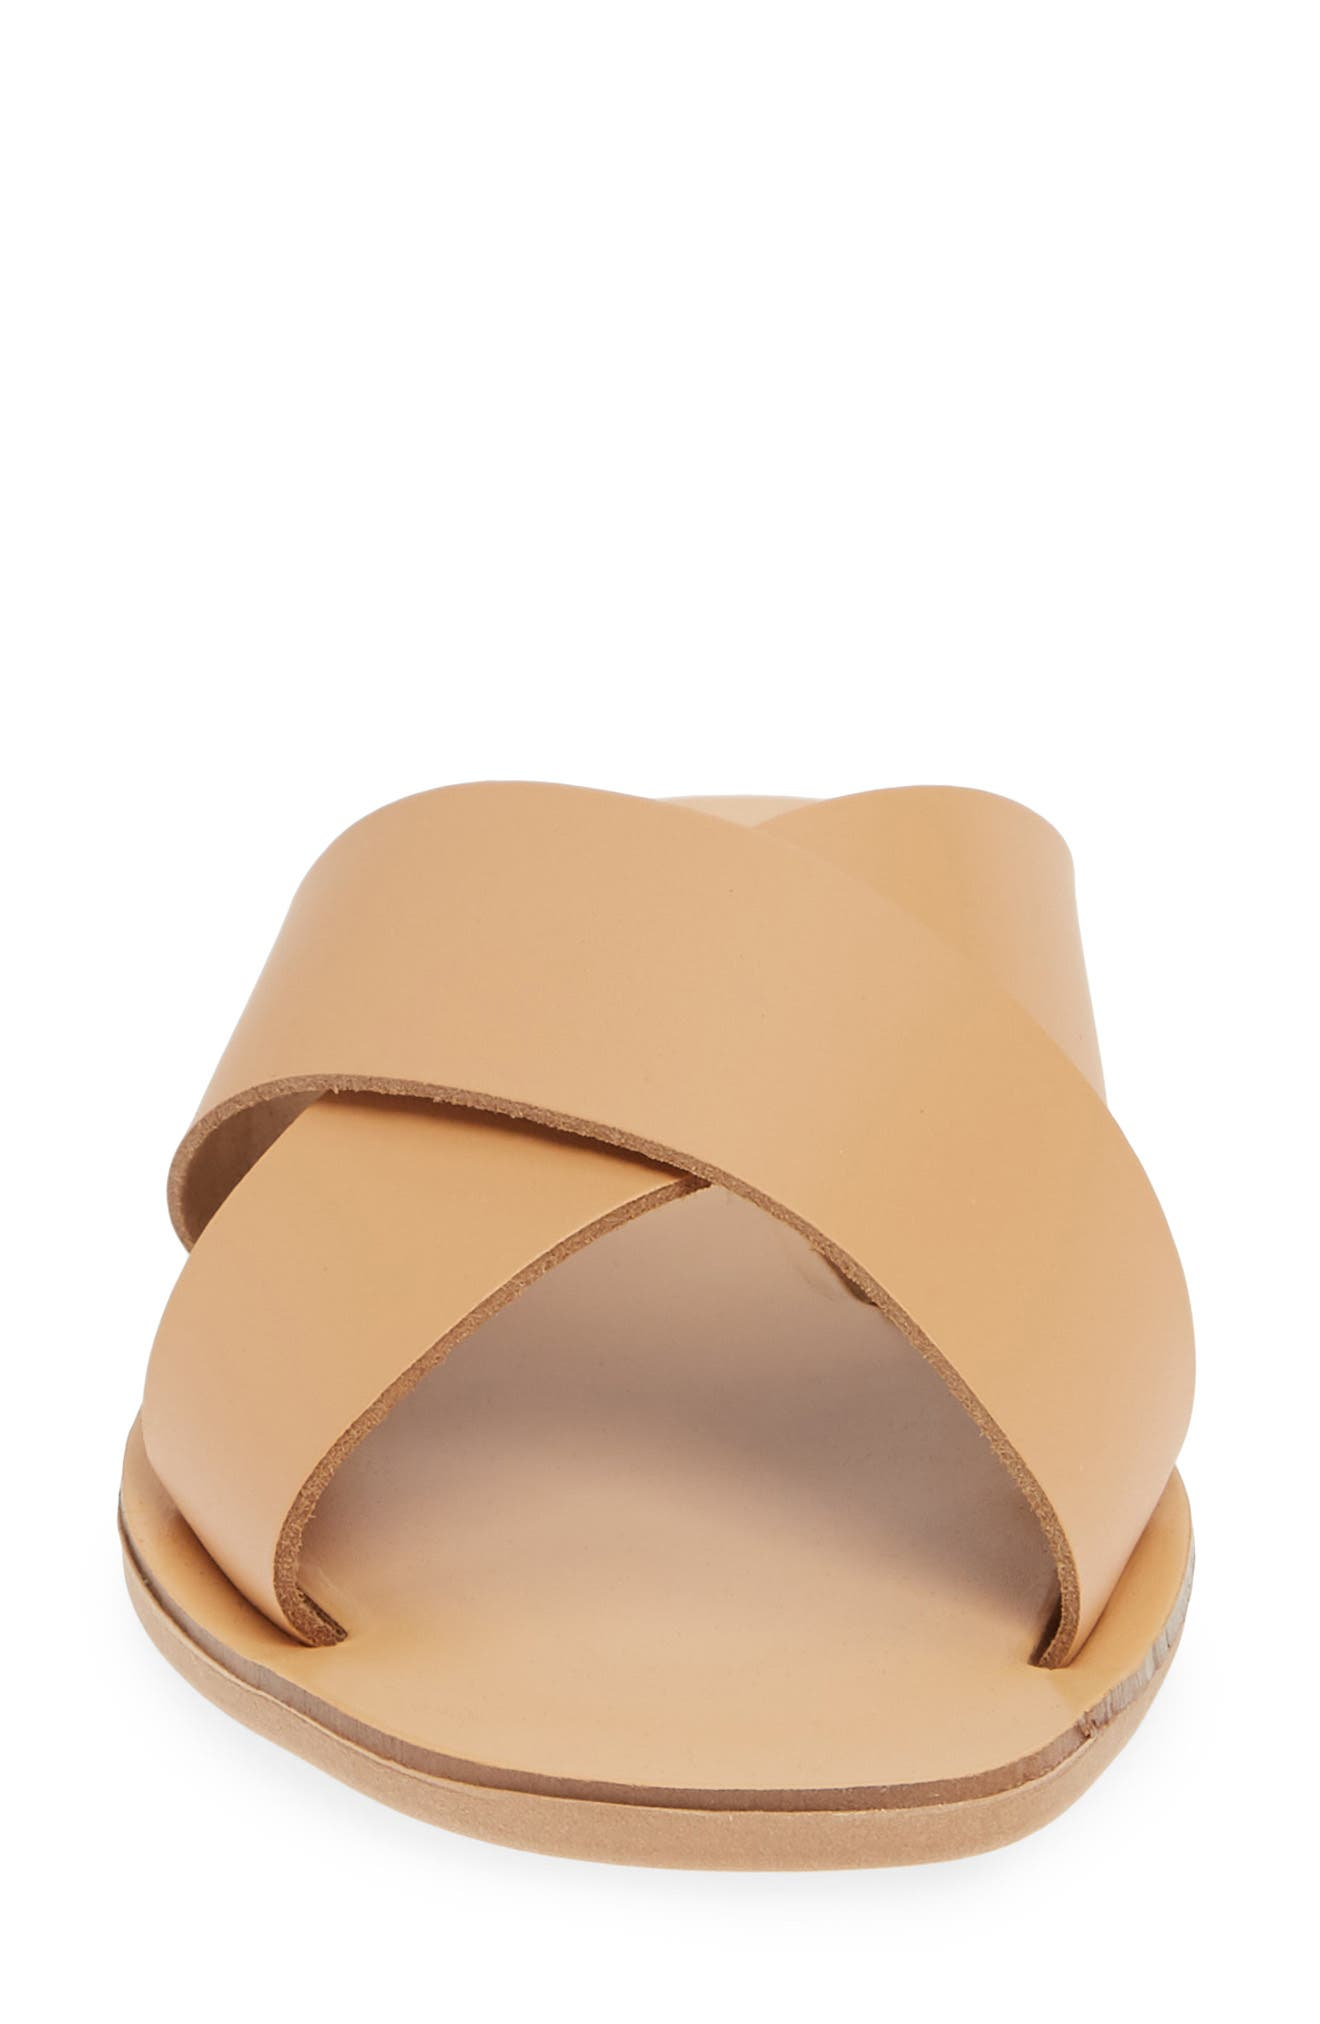 Total Relaxation Slide Sandal,                             Alternate thumbnail 4, color,                             BEIGE LEATHER